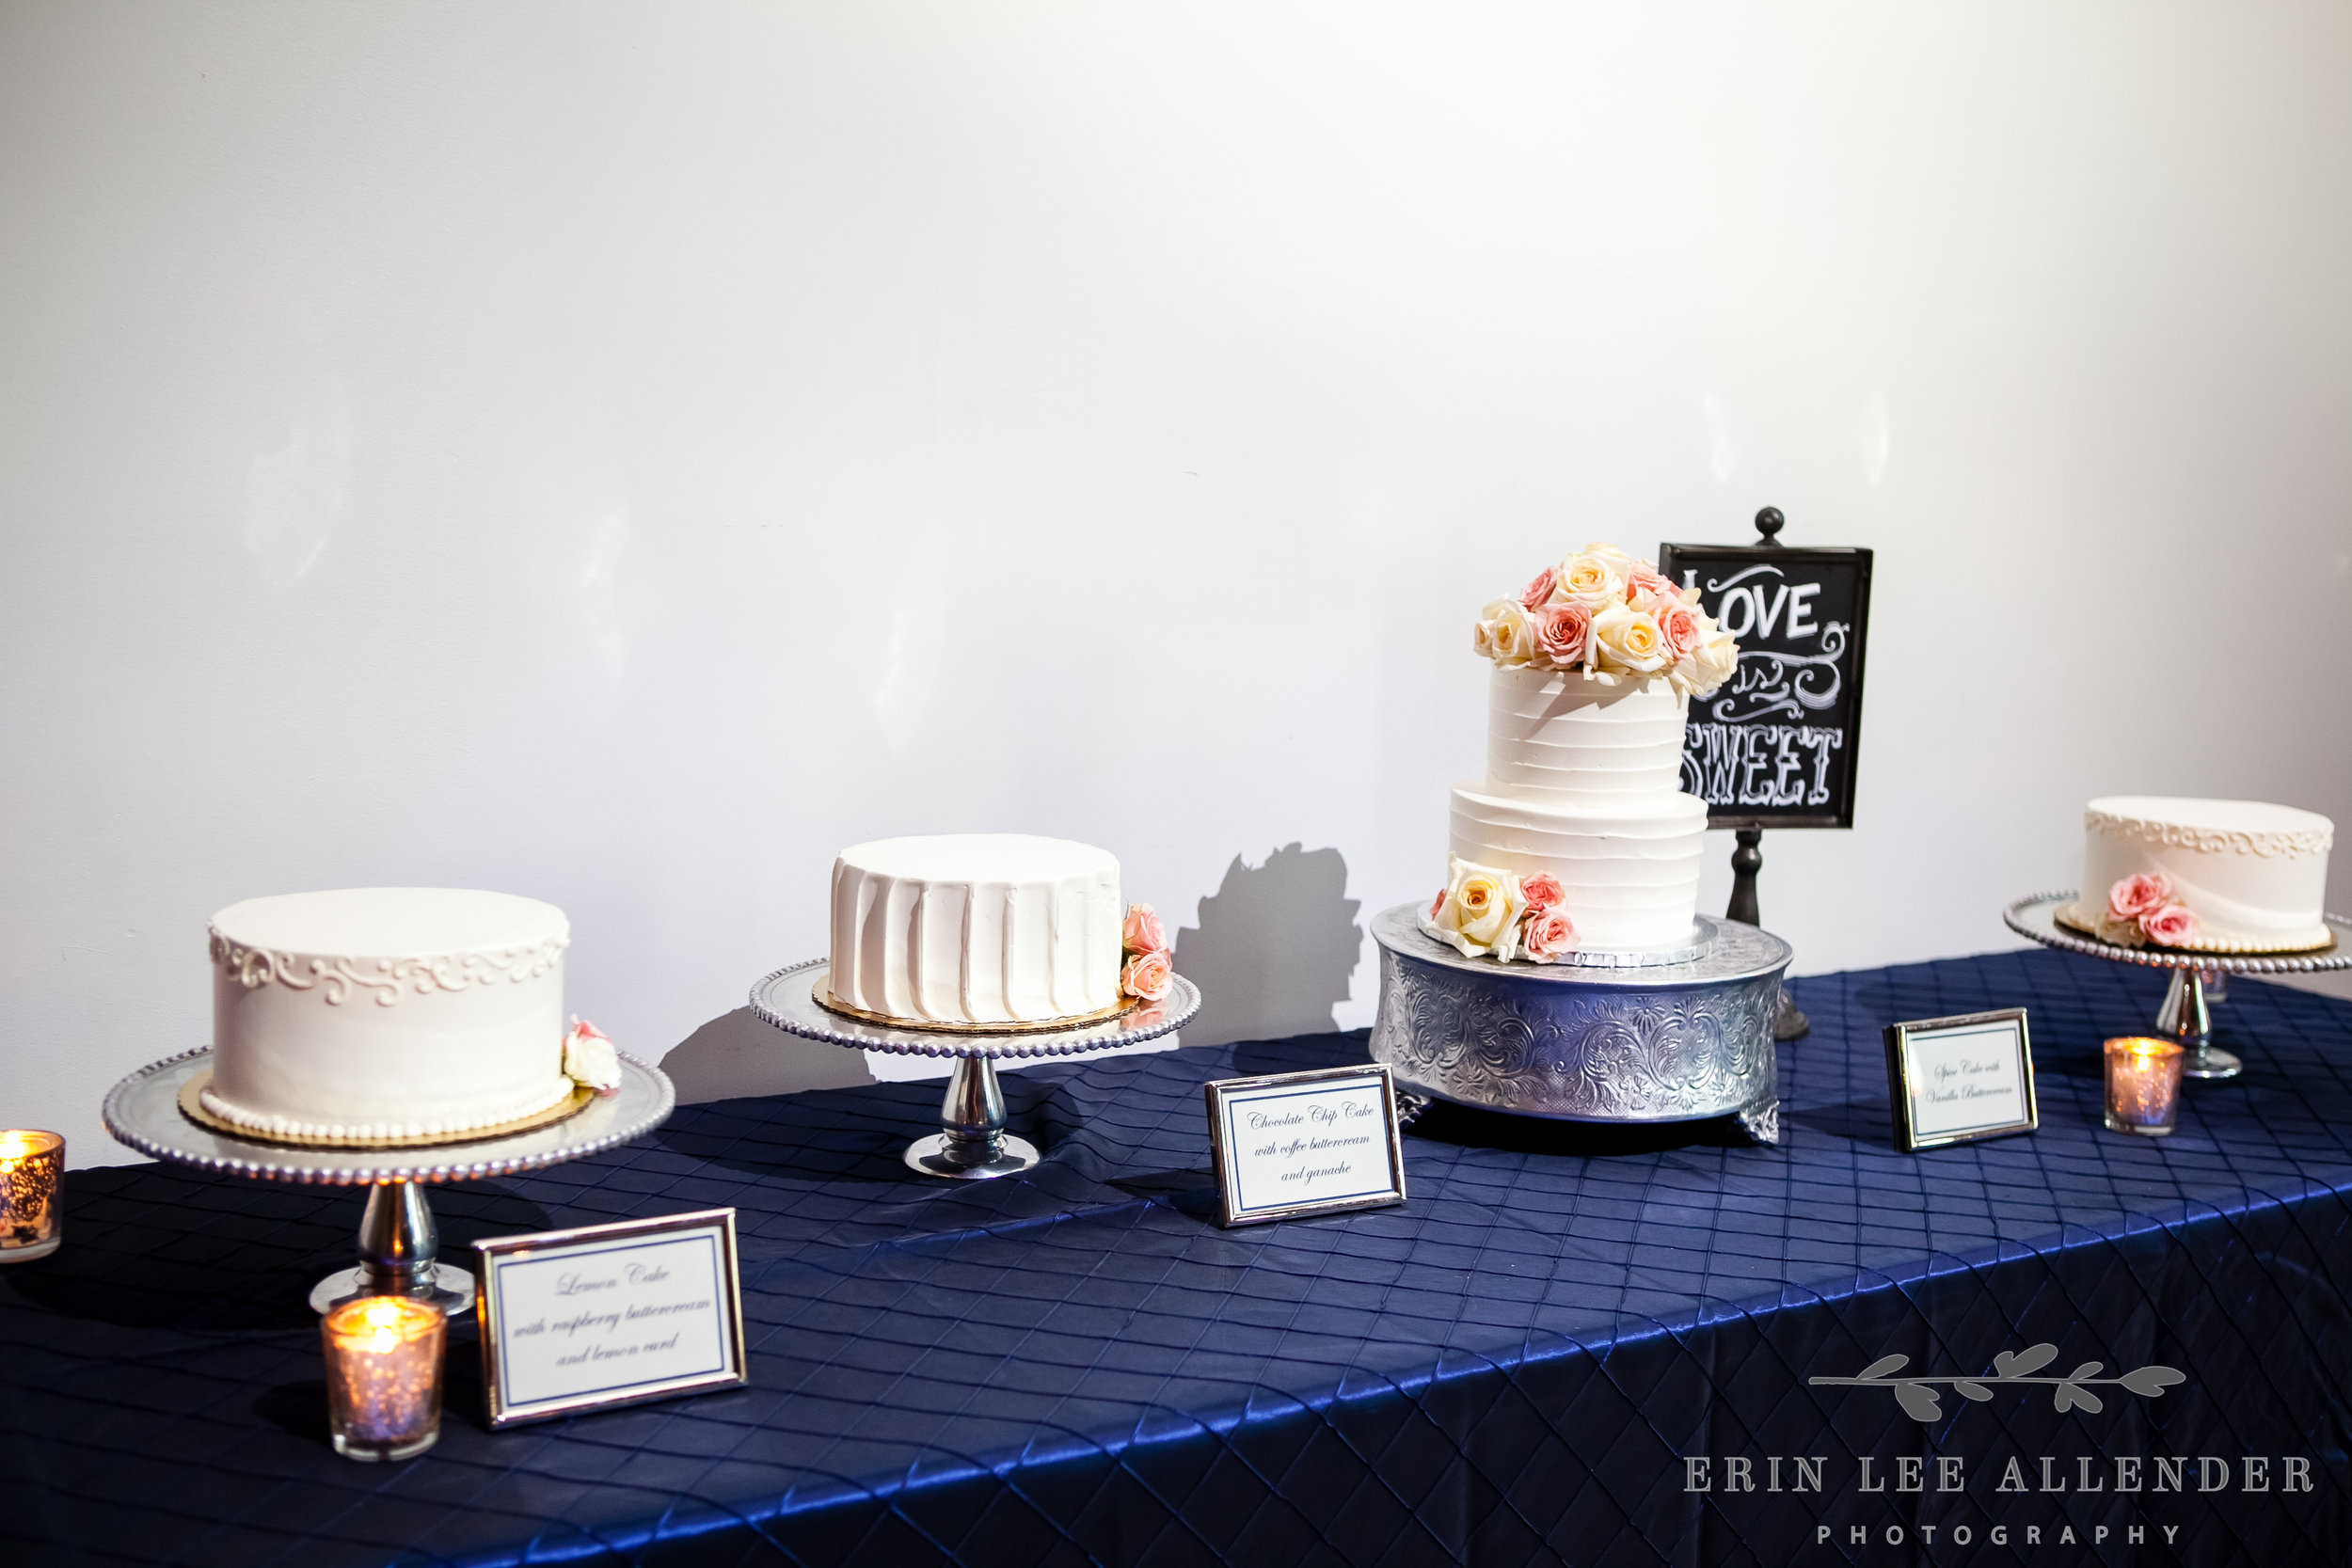 Cake_Table_With_Multiple_One_Tier_Cakes